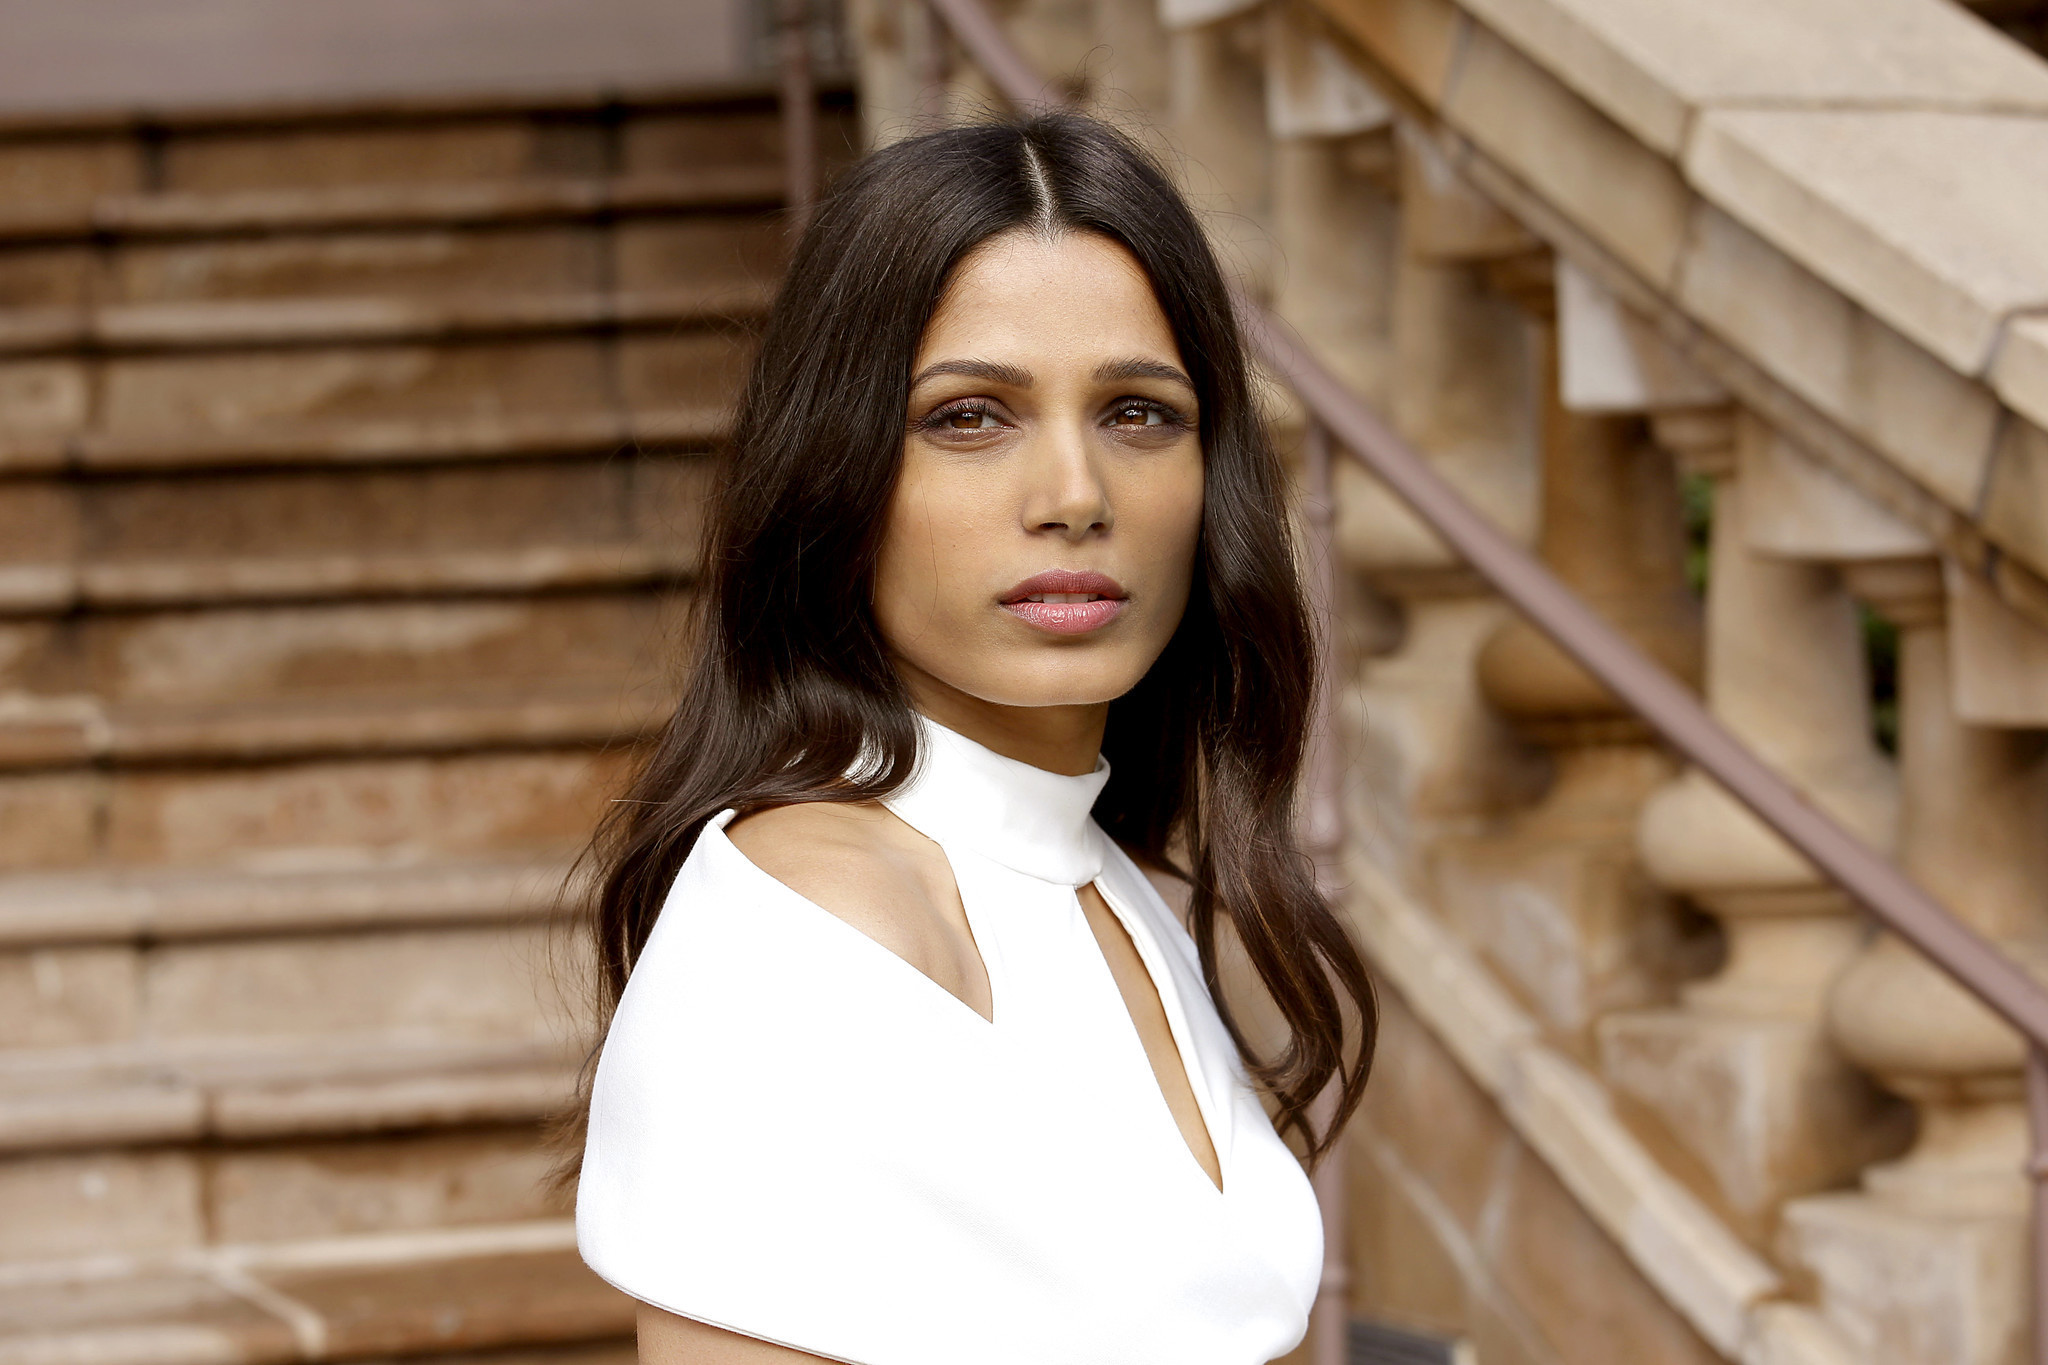 Freida Pinto shows her passionate side and causes a stir ... Freida Pinto